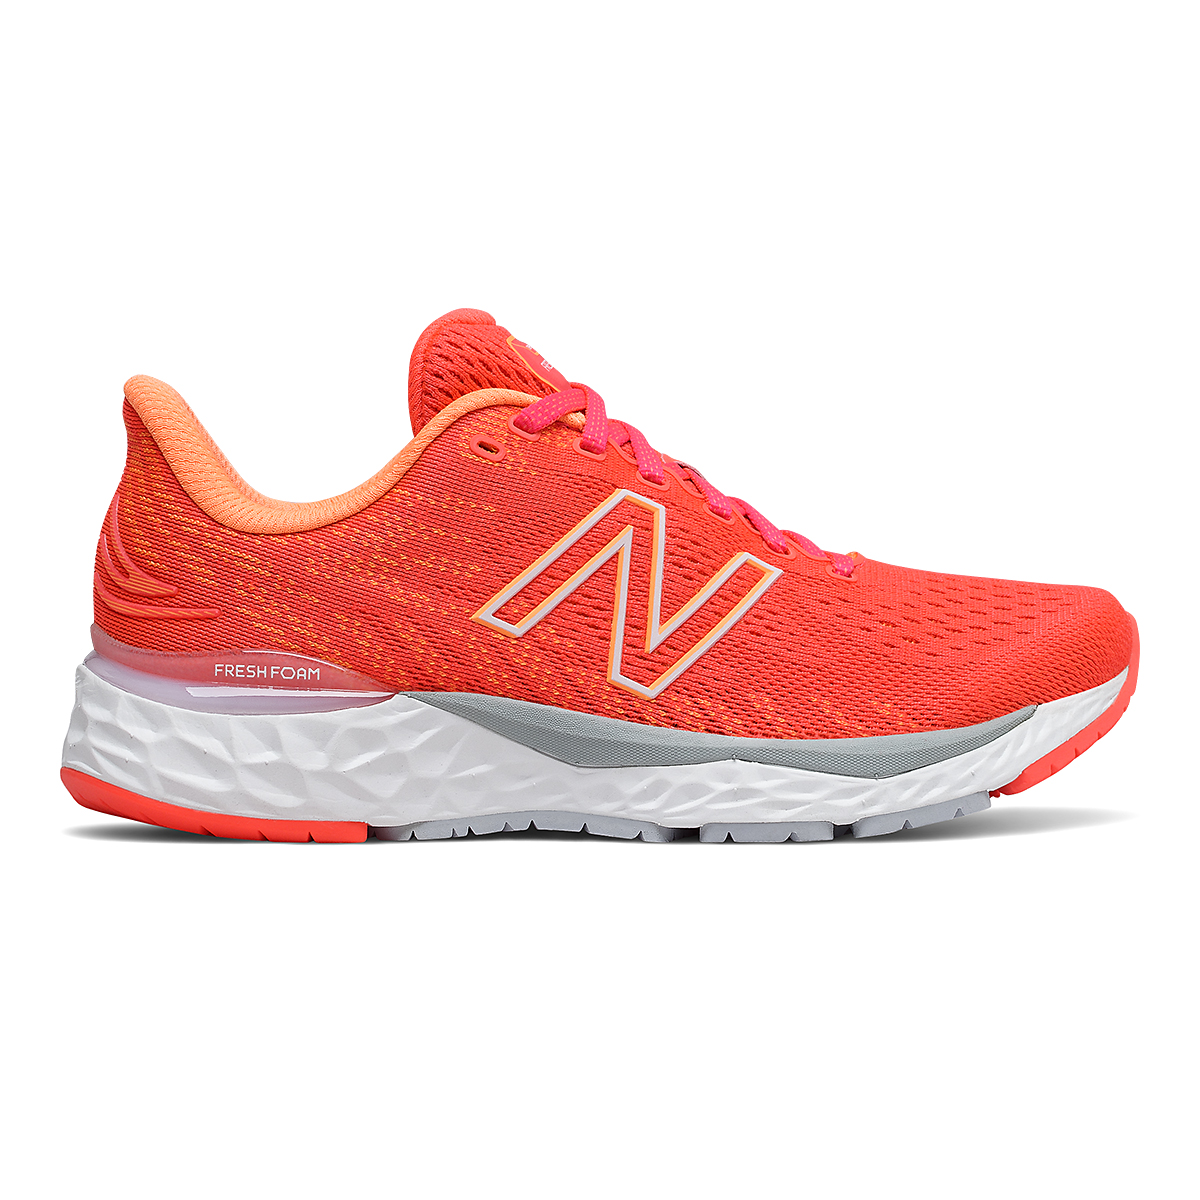 Women's New Balance 880V11 Running Shoe - Color: Vivid Coral/Citrus Punch - Size: 5 - Width: Extra Wide, Vivid Coral/Citrus Punch, large, image 1